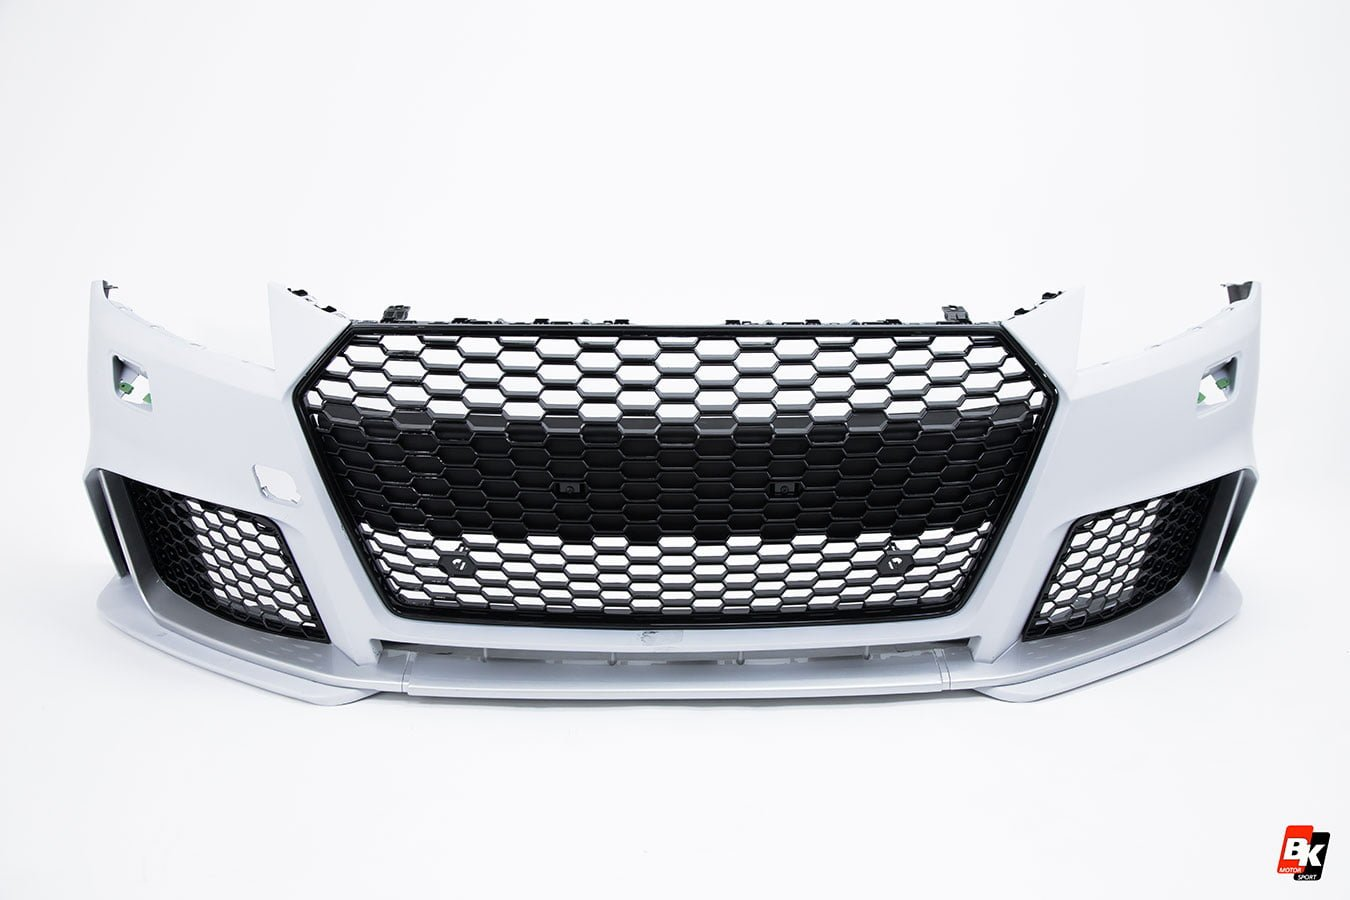 Bkm Front Bumper Kit With Grille Rs Style Fits Audi Tt Tts 2000 Body Kits